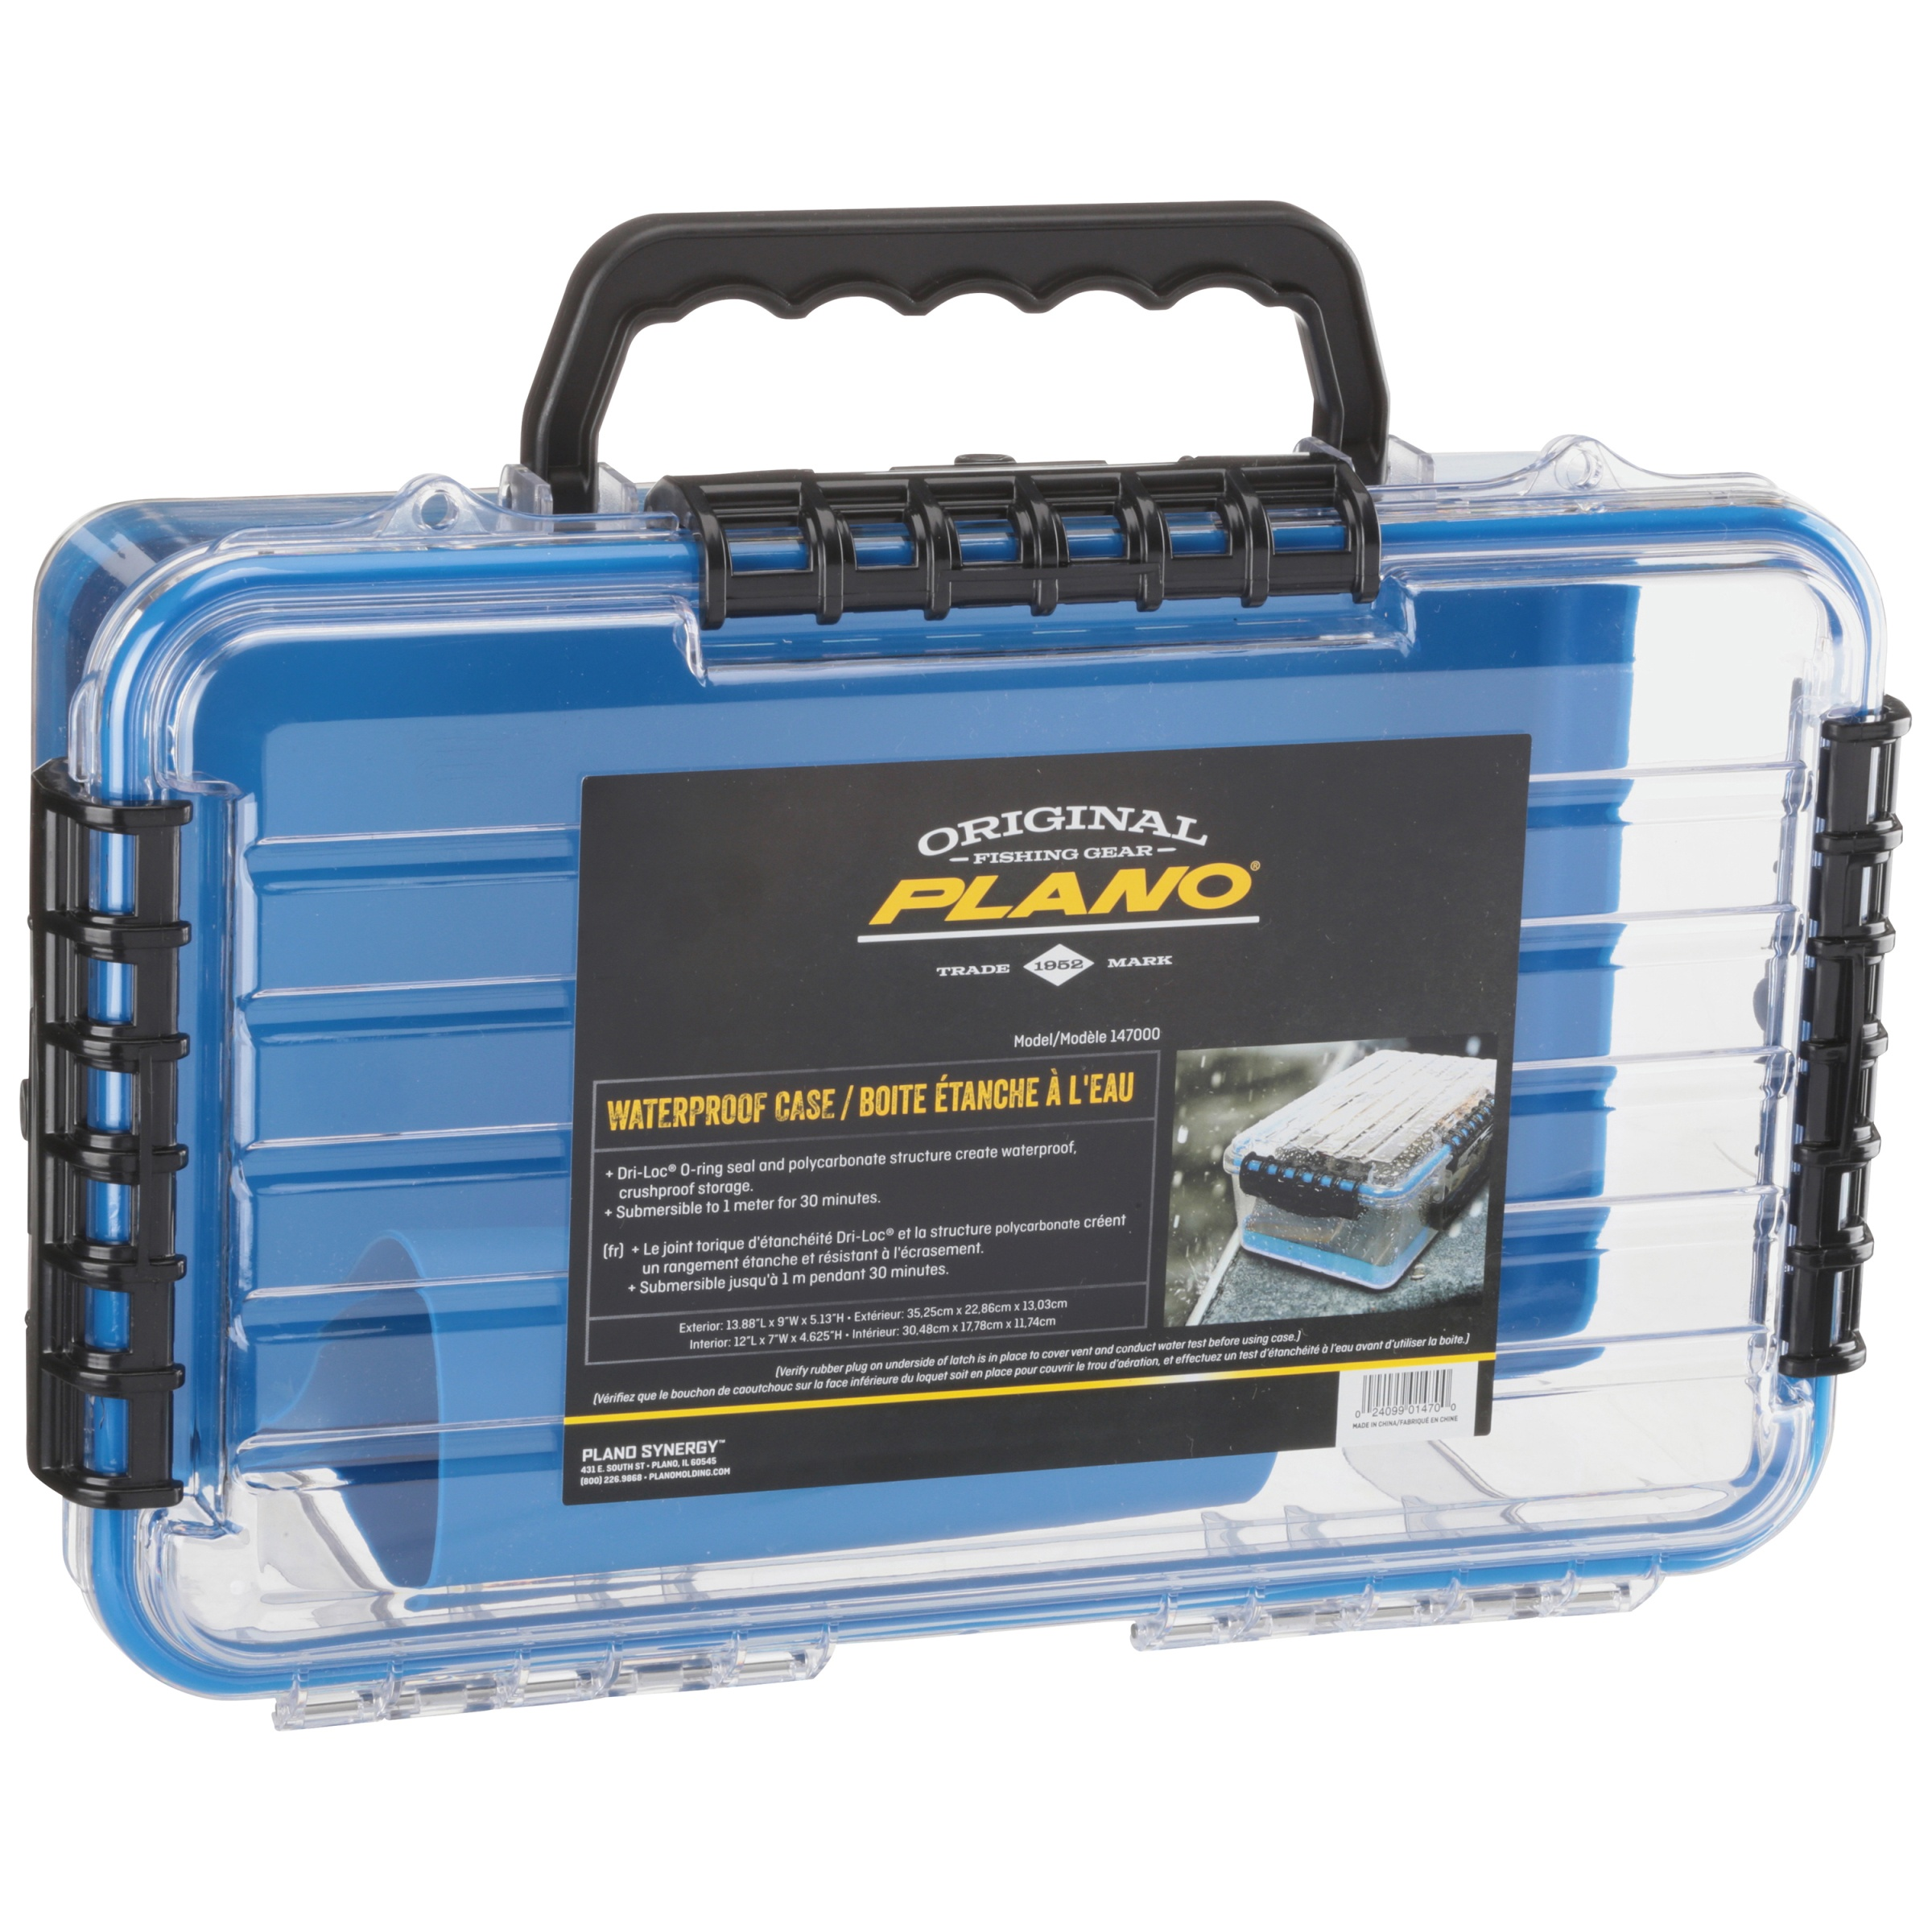 Plano Waterproof Case Tackle Box by Plano Synergy